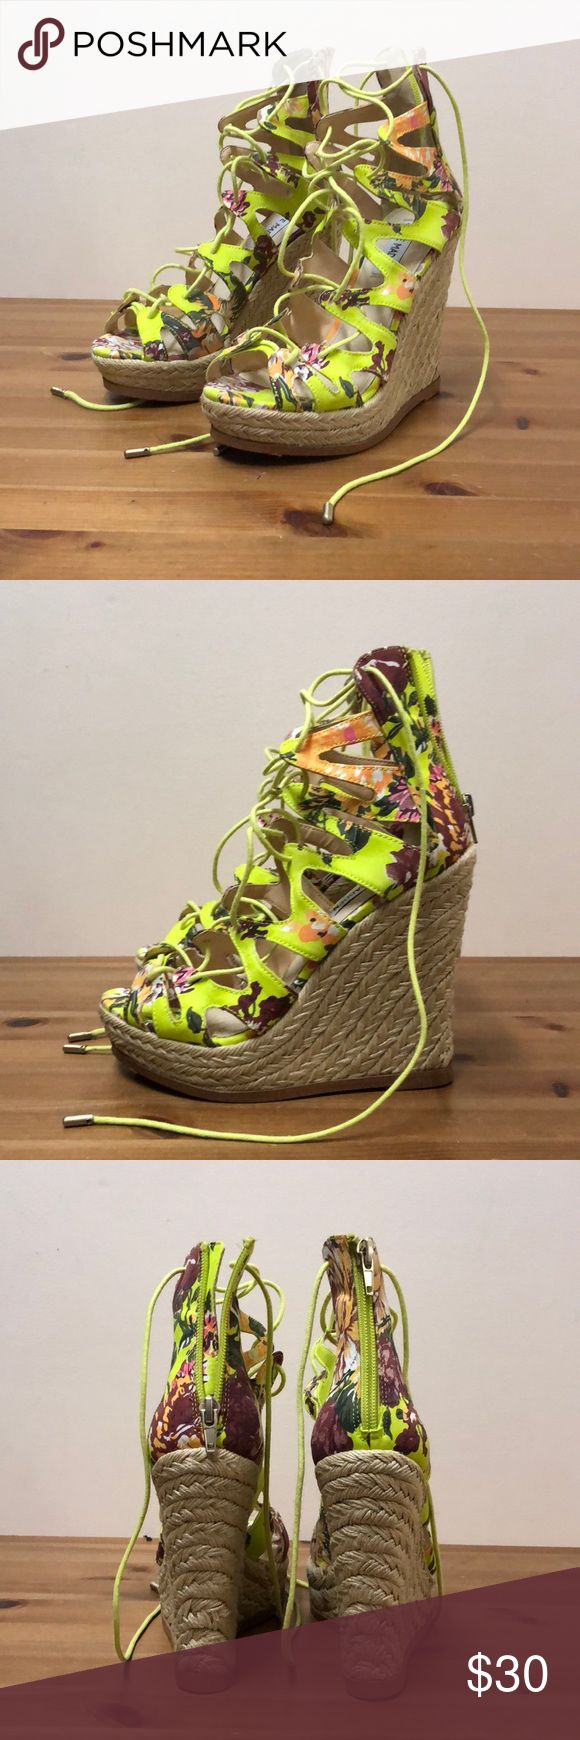 Steve Madden espadrilles 'Thera' 100% Authentic (NEW) Steve Madden 'THEEA' floral Espadrilles | size: 6M | ships without original box Steve Madden Shoes Espadrilles